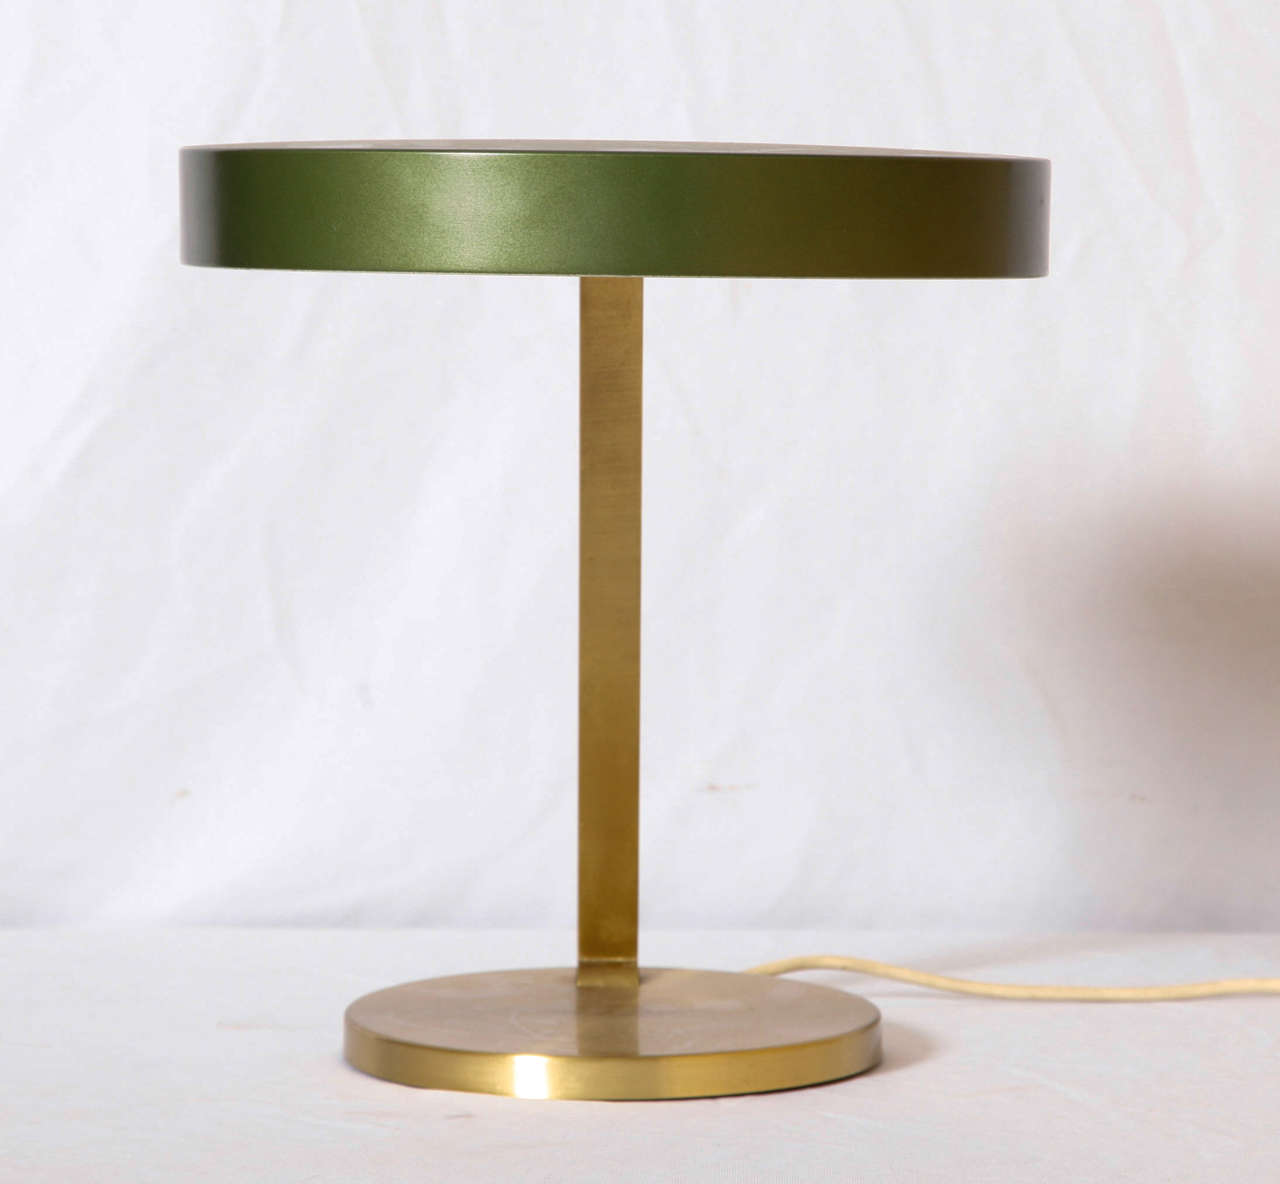 Adjustable Desk Lamp Having An Enameled Emerald Green Shade Connected By A  Curved Brass Stem And